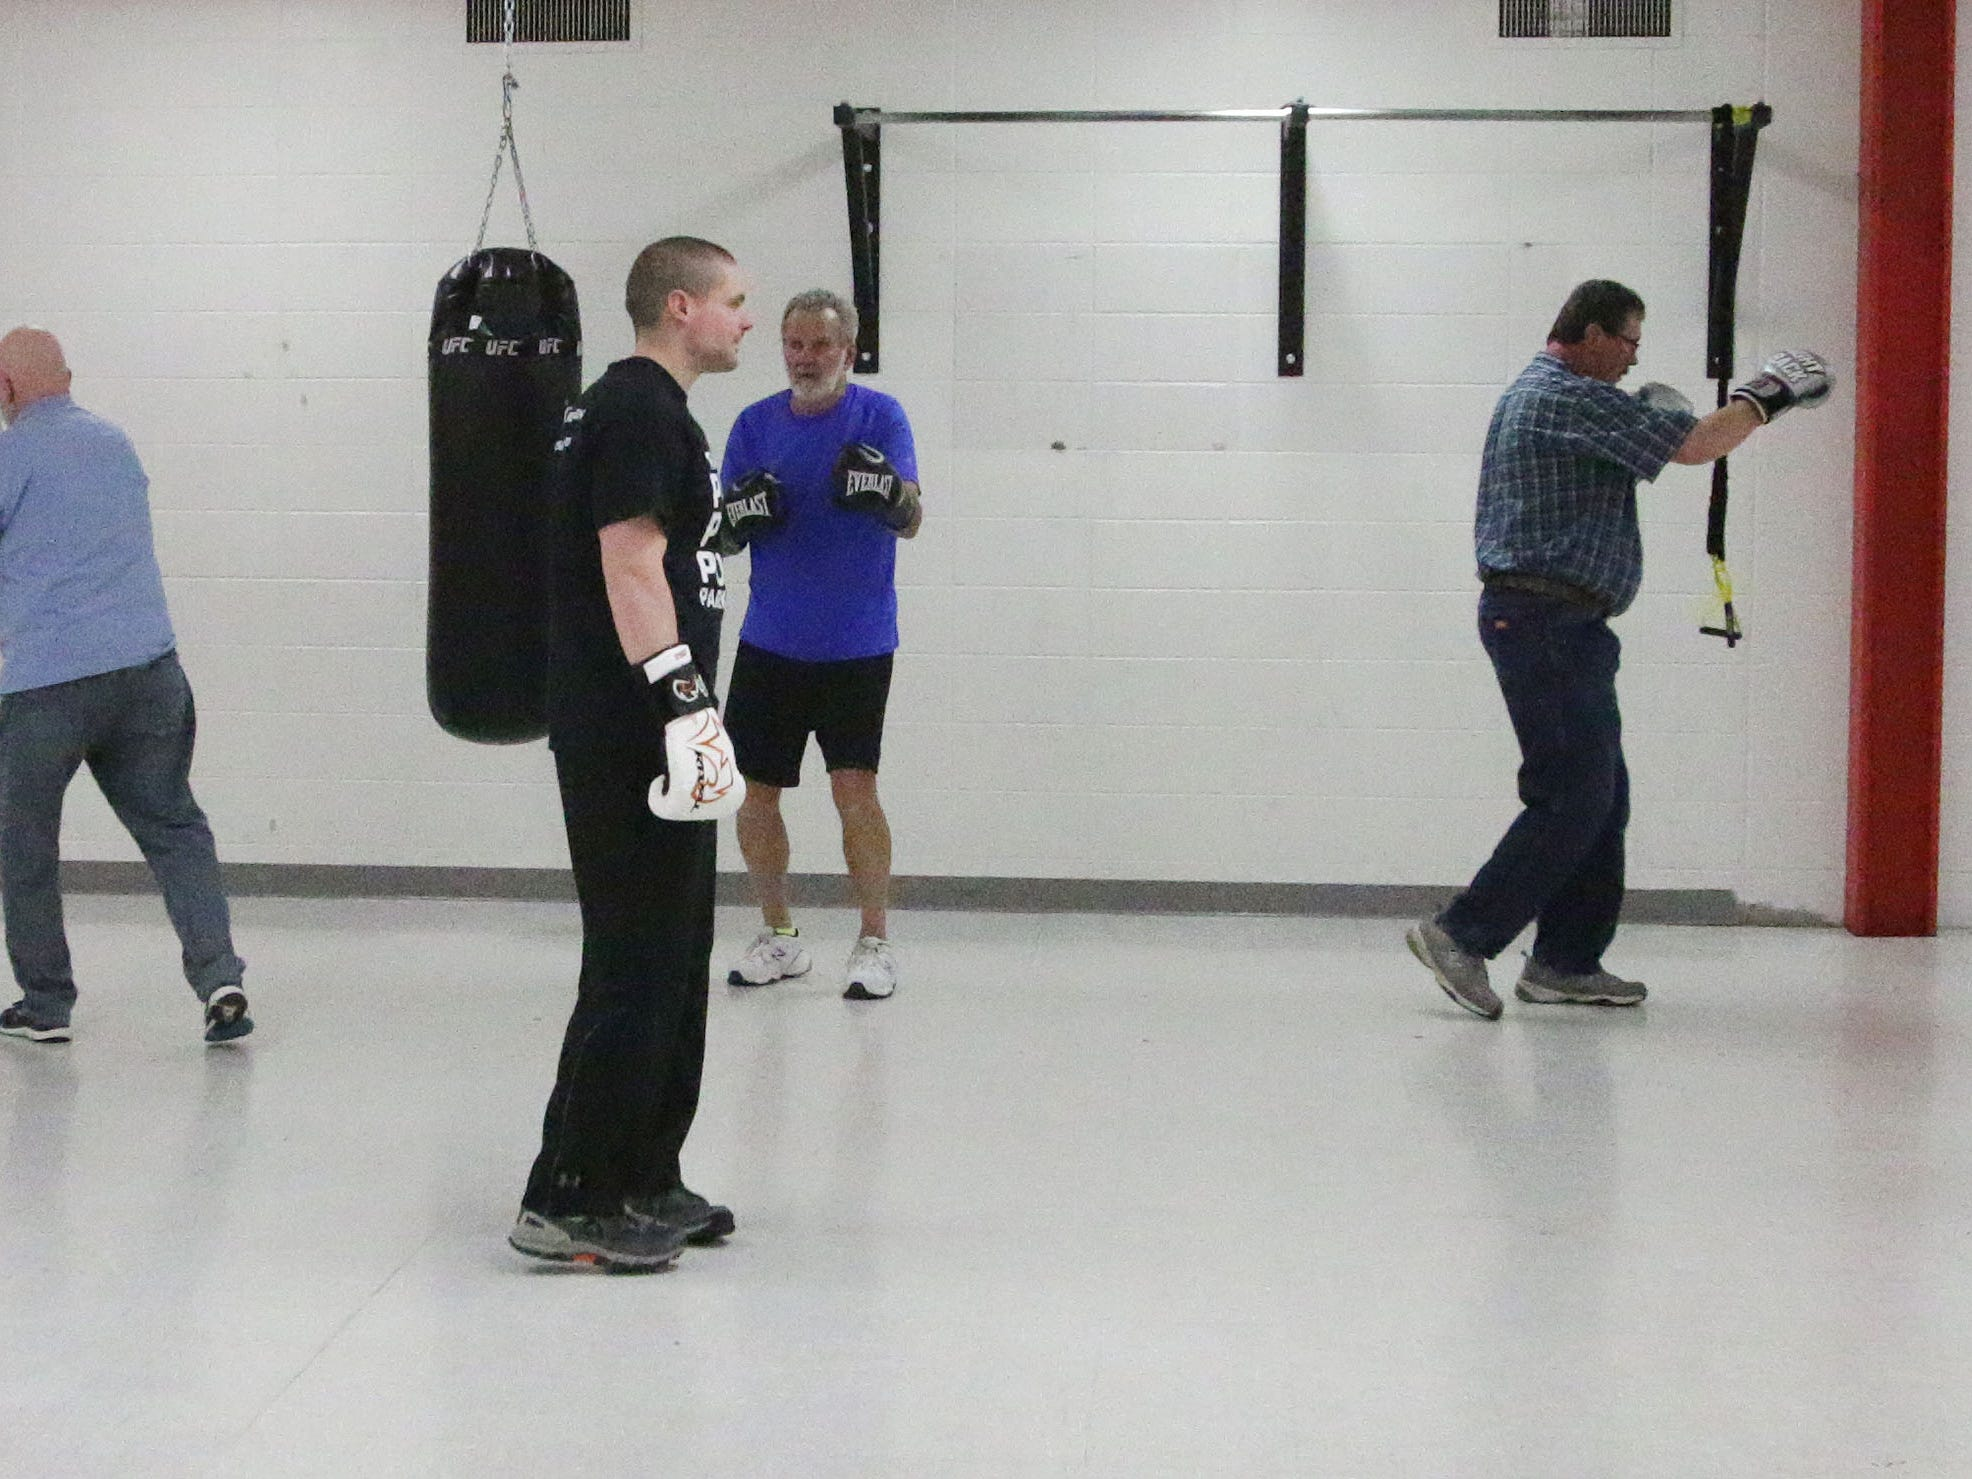 Fighting Parkinson's instructor Matt Glenzer, center, supervises the members of the class, Tuesday, March 26, 2019, in Sheboygan, Wis.